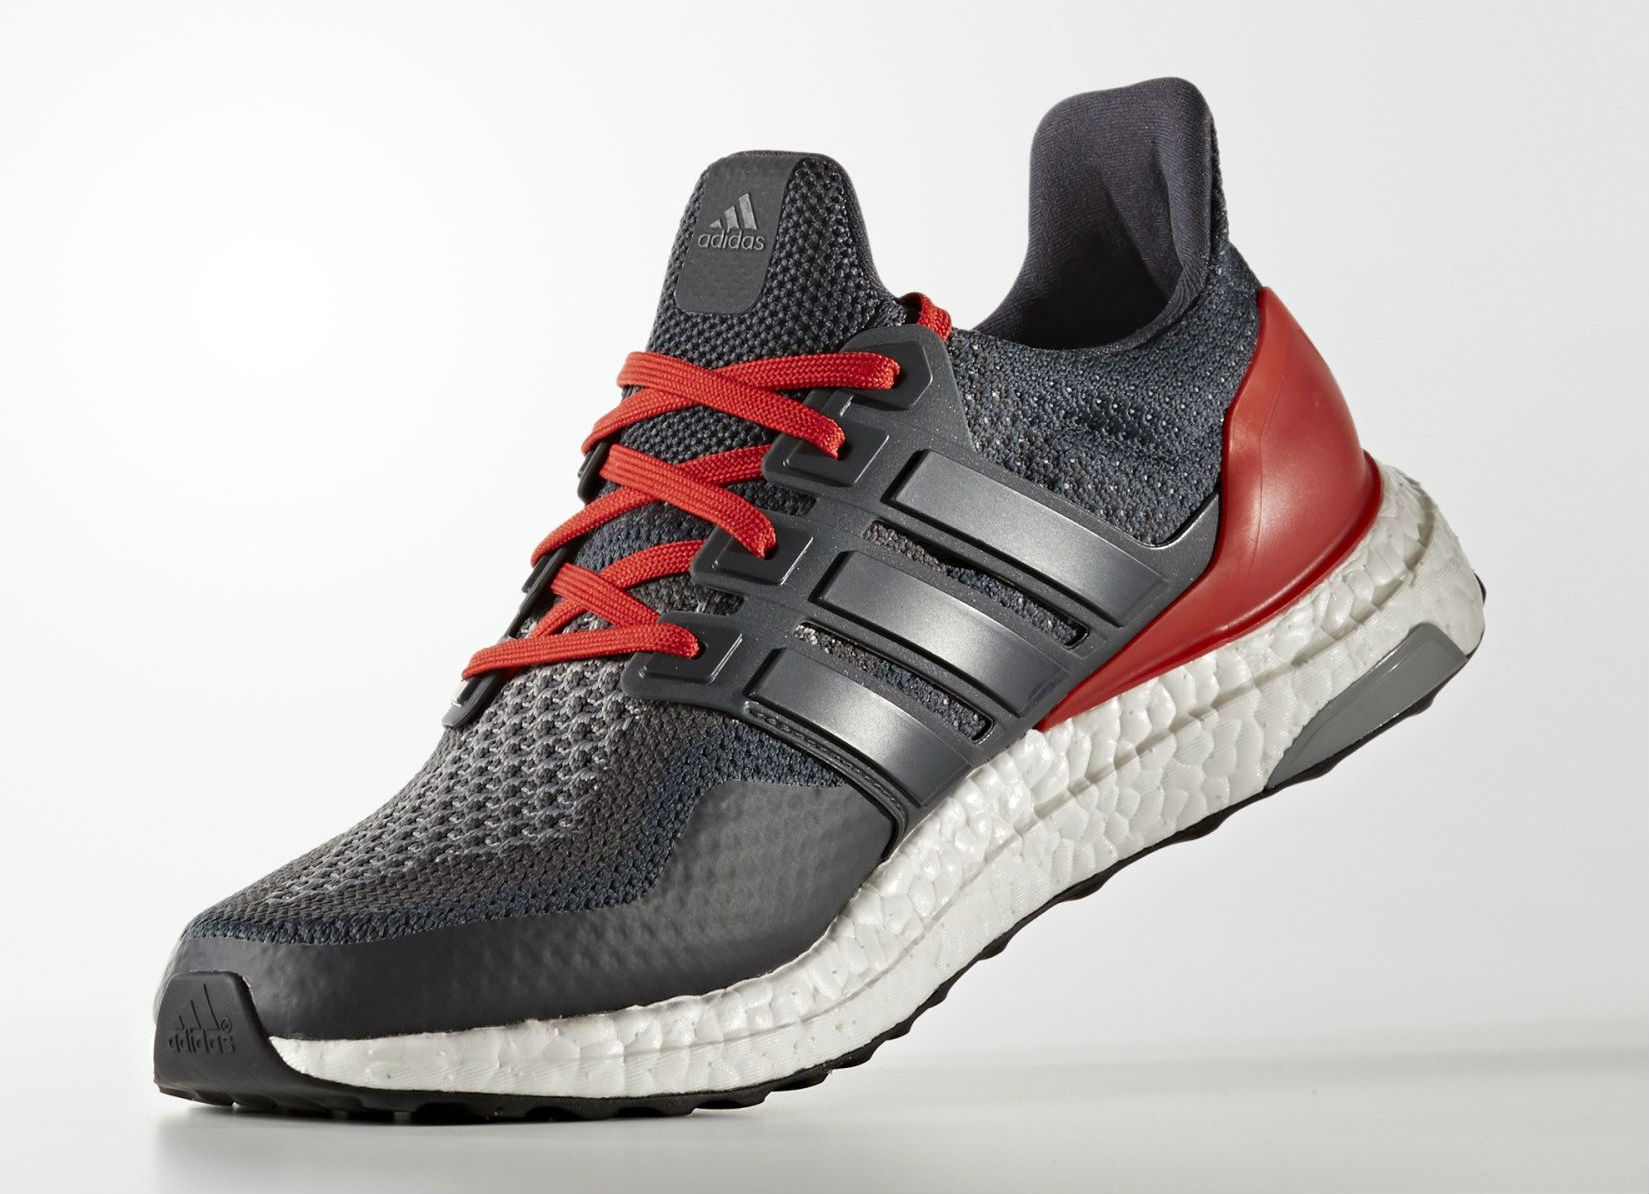 341f479da adidas Ultra Boost ATR Dark Grey Red Medial AQ5955